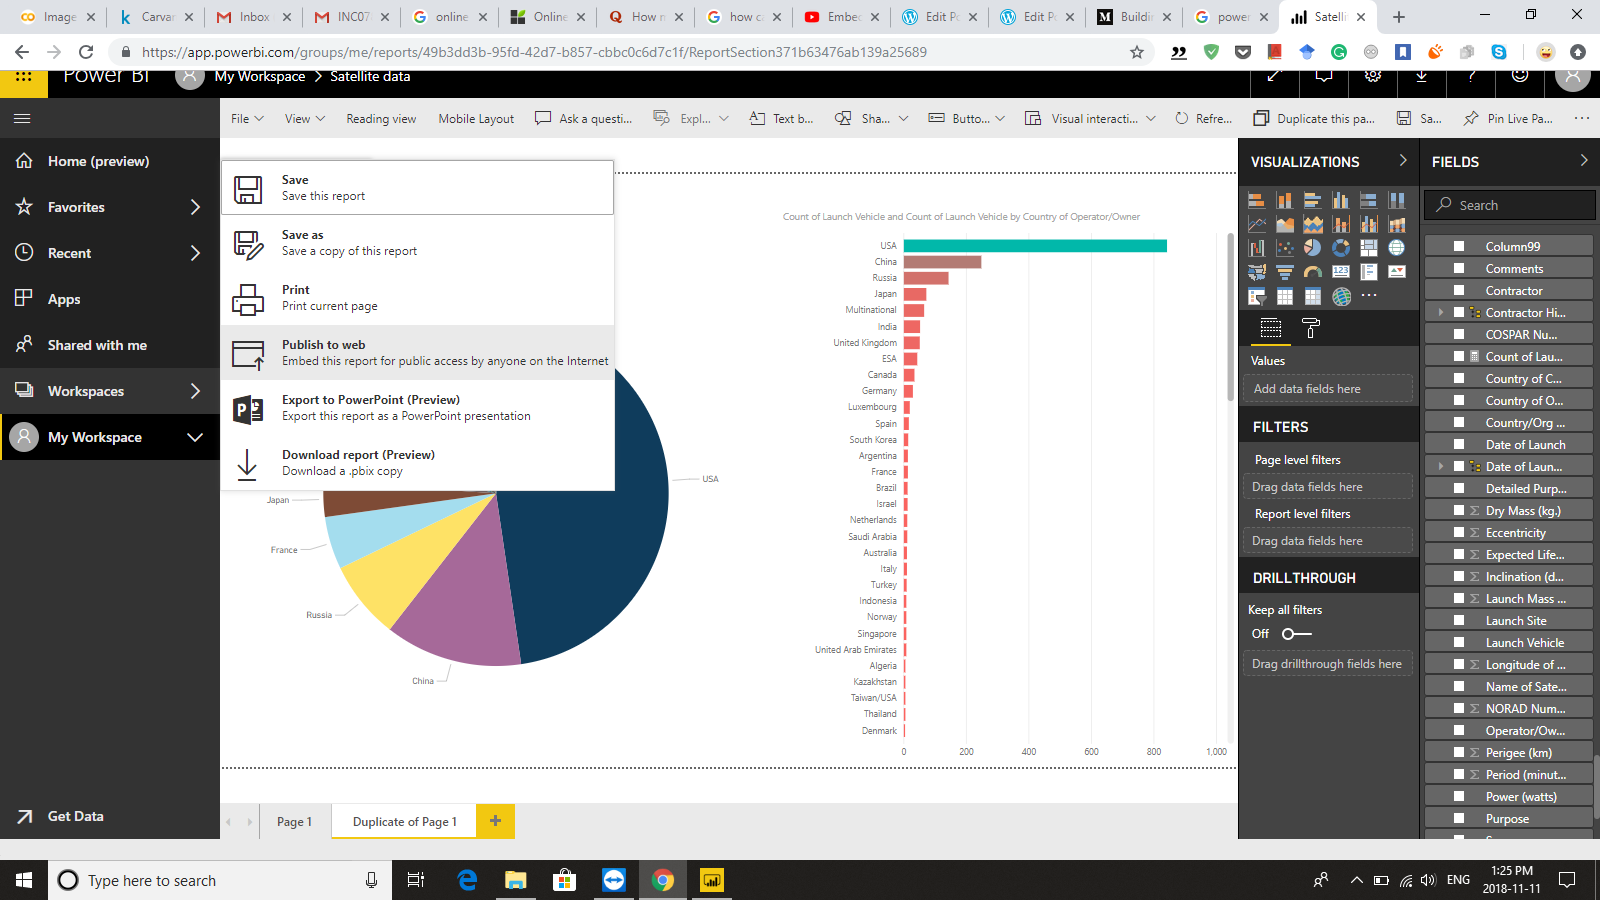 ... website visualization of the dataset based on graphs and fields selected in my report, it also changes in real time, as I change them on my Power BI app ...